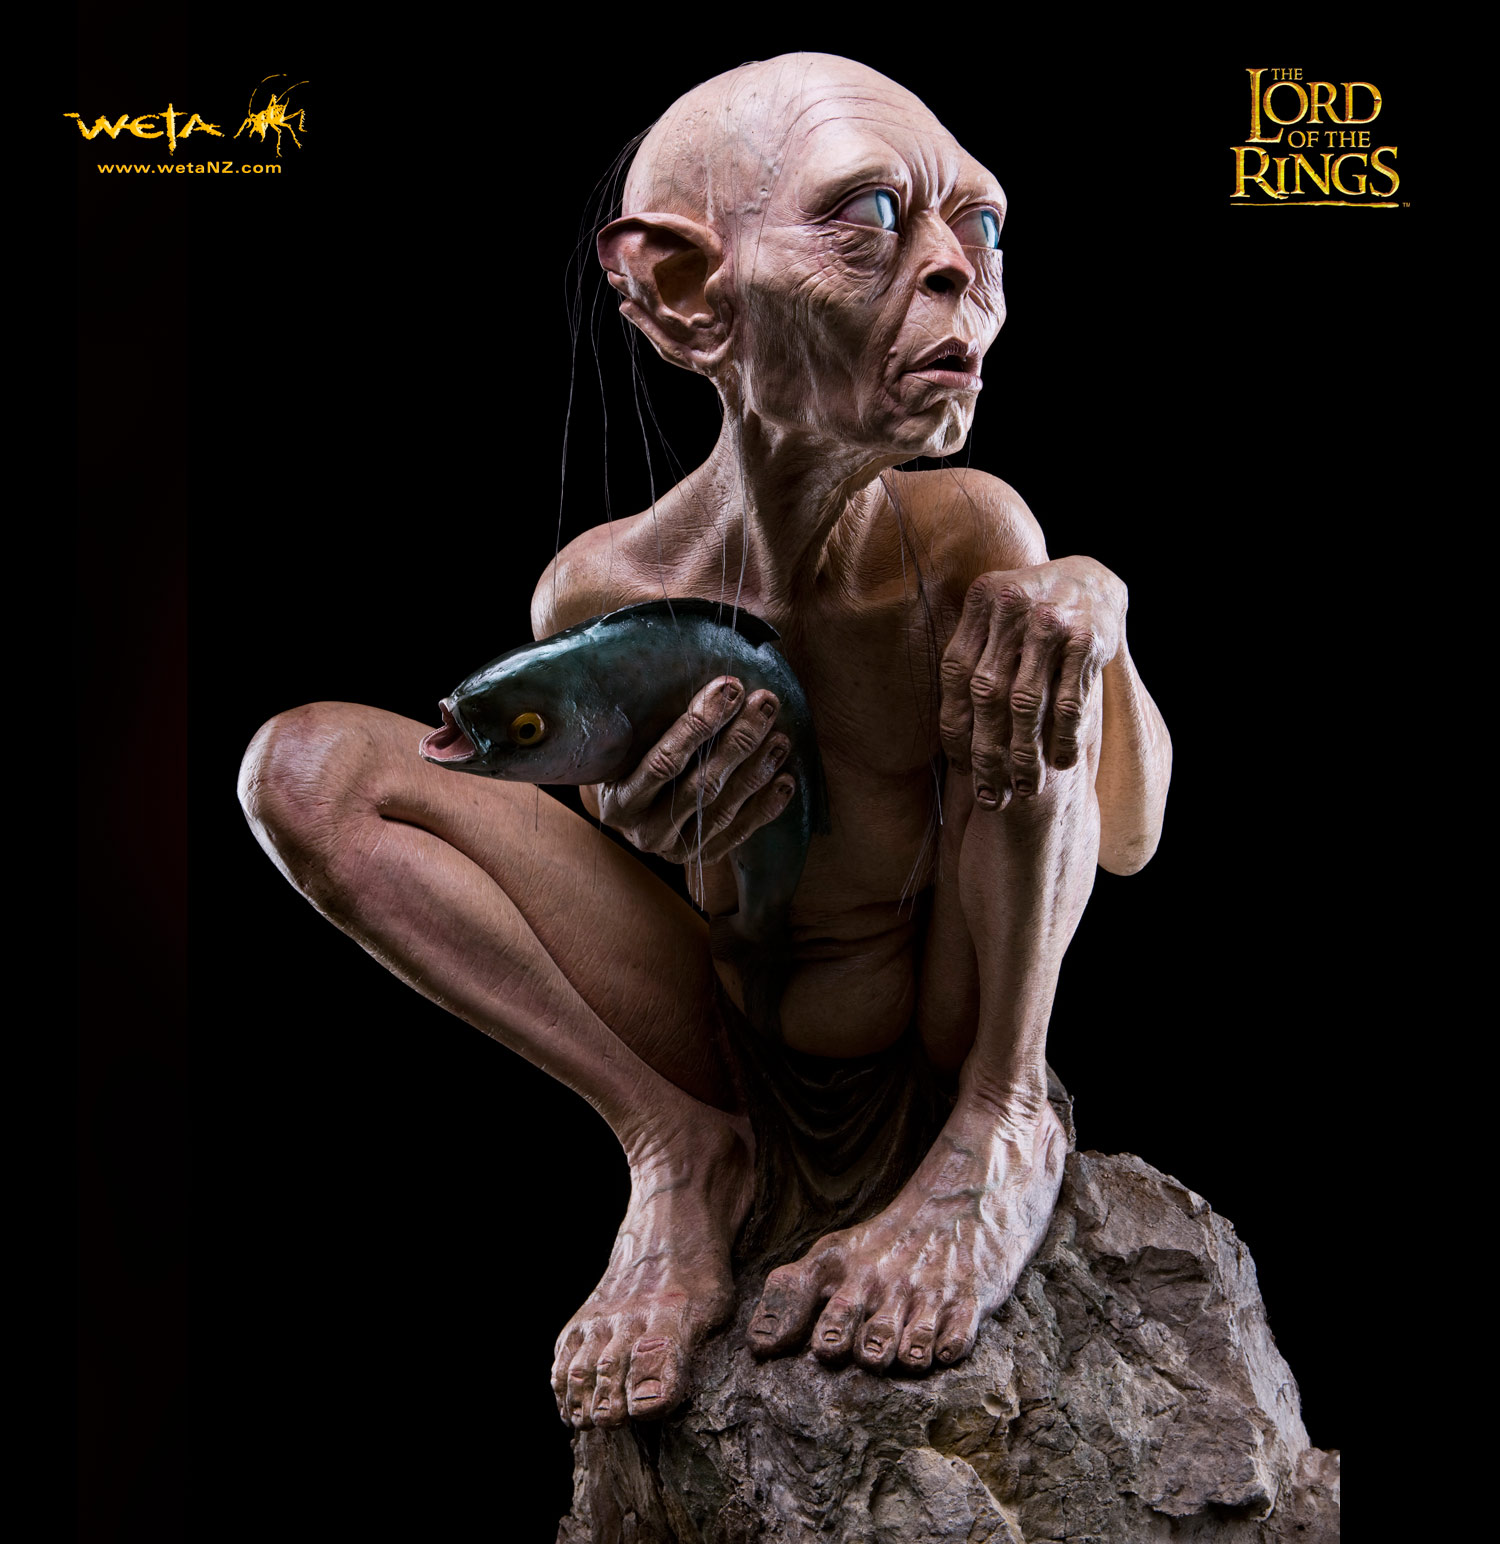 Lord of the Rings Gollum statue by Weta